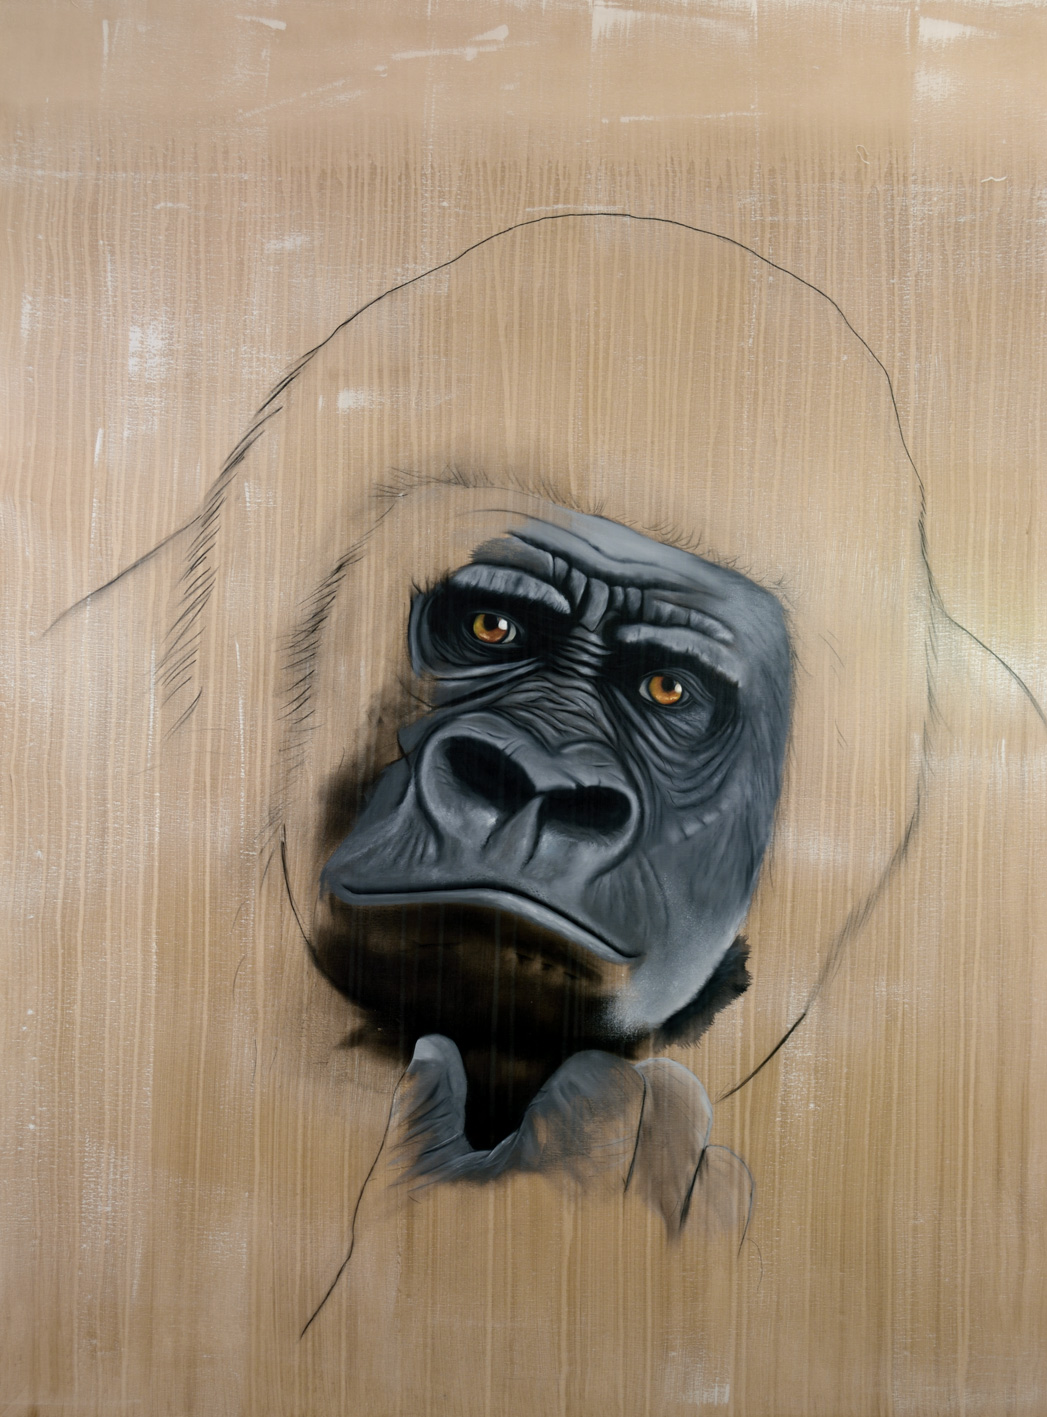 GORILLA-GORILLA divers Thierry Bisch painter animals painting art decoration hotel design interior luxury nature biodiversity conservation